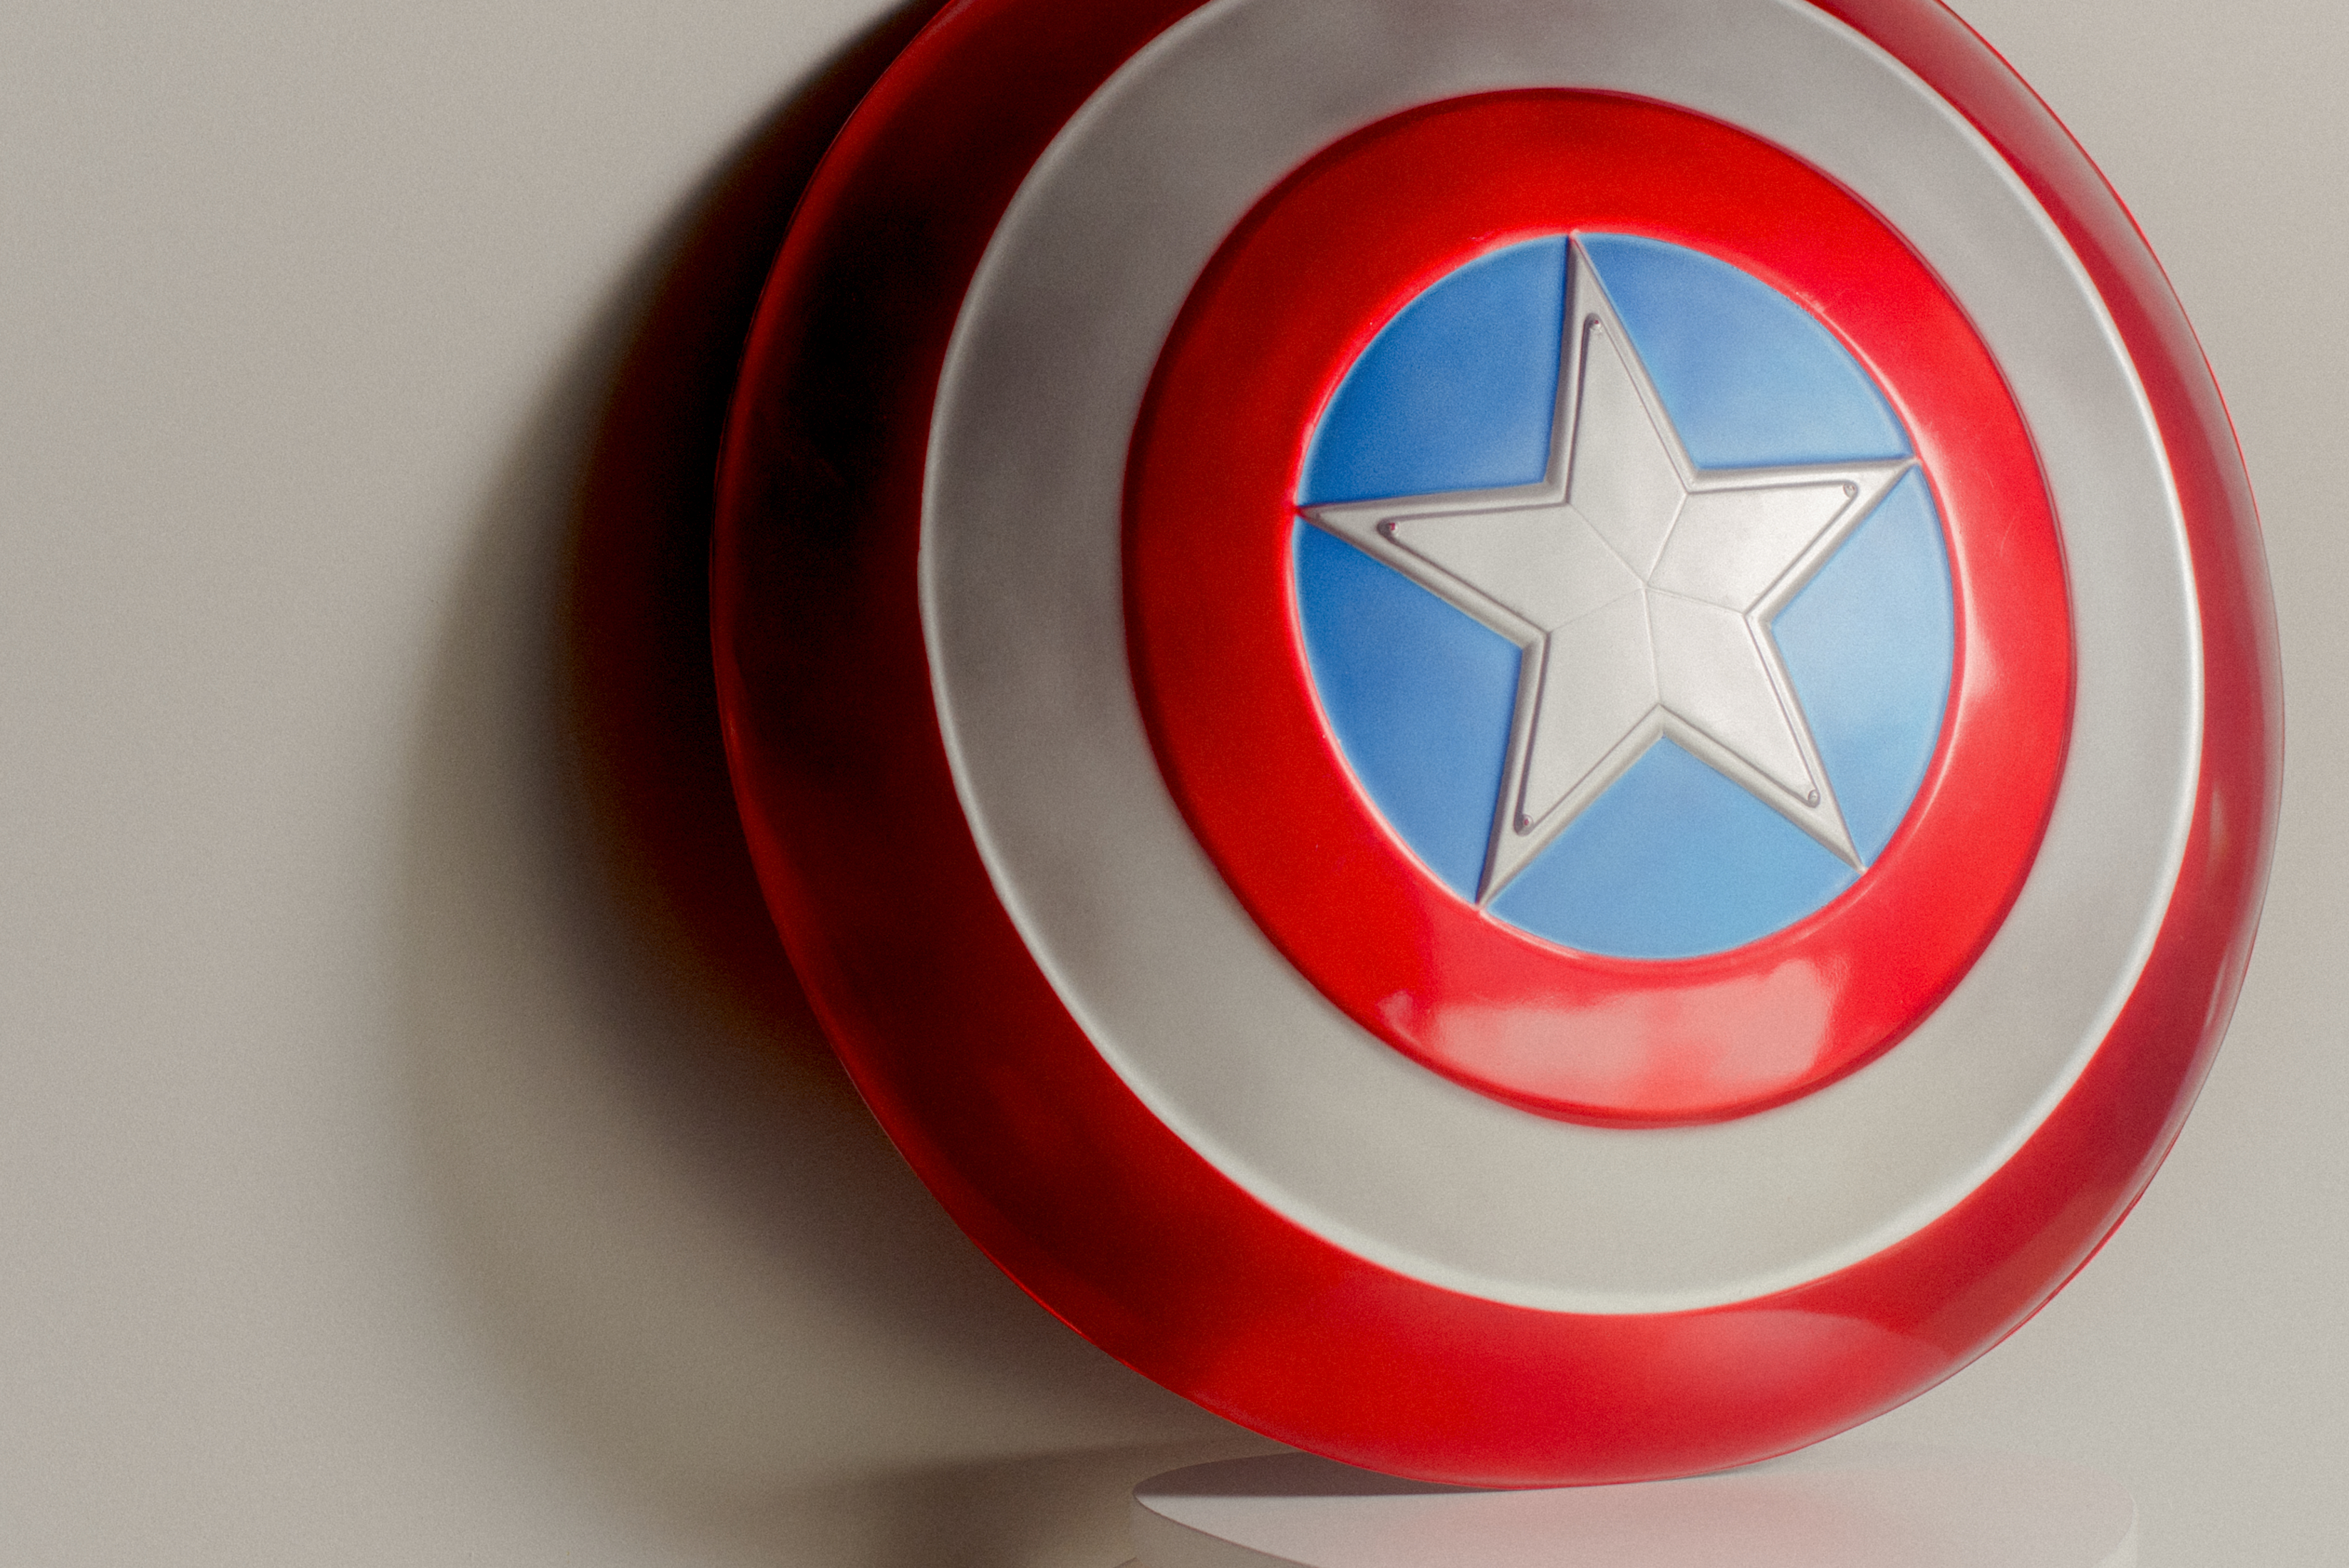 Captain America's red, white and blue shield sits perched on a stool against a white wall.